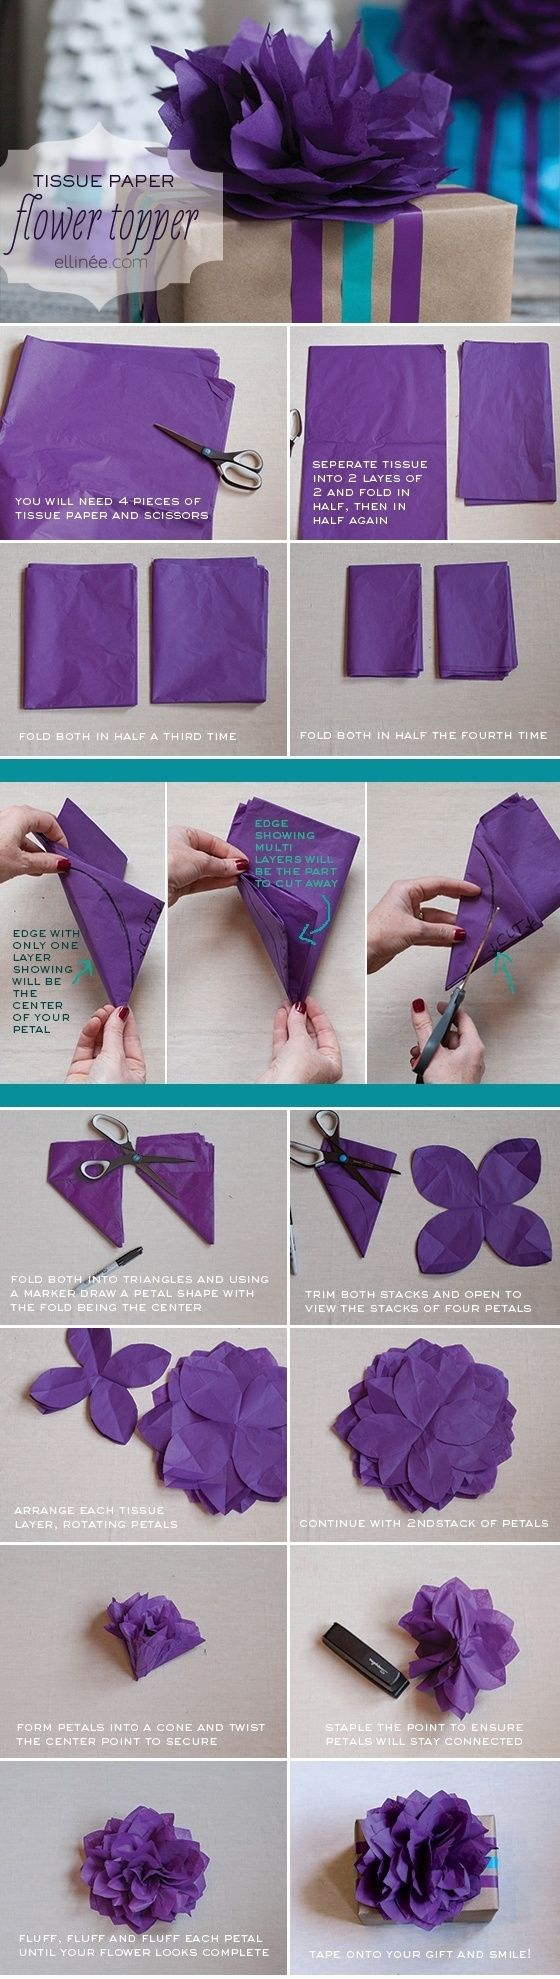 diy tissue paper flower pictures  photos  and images for